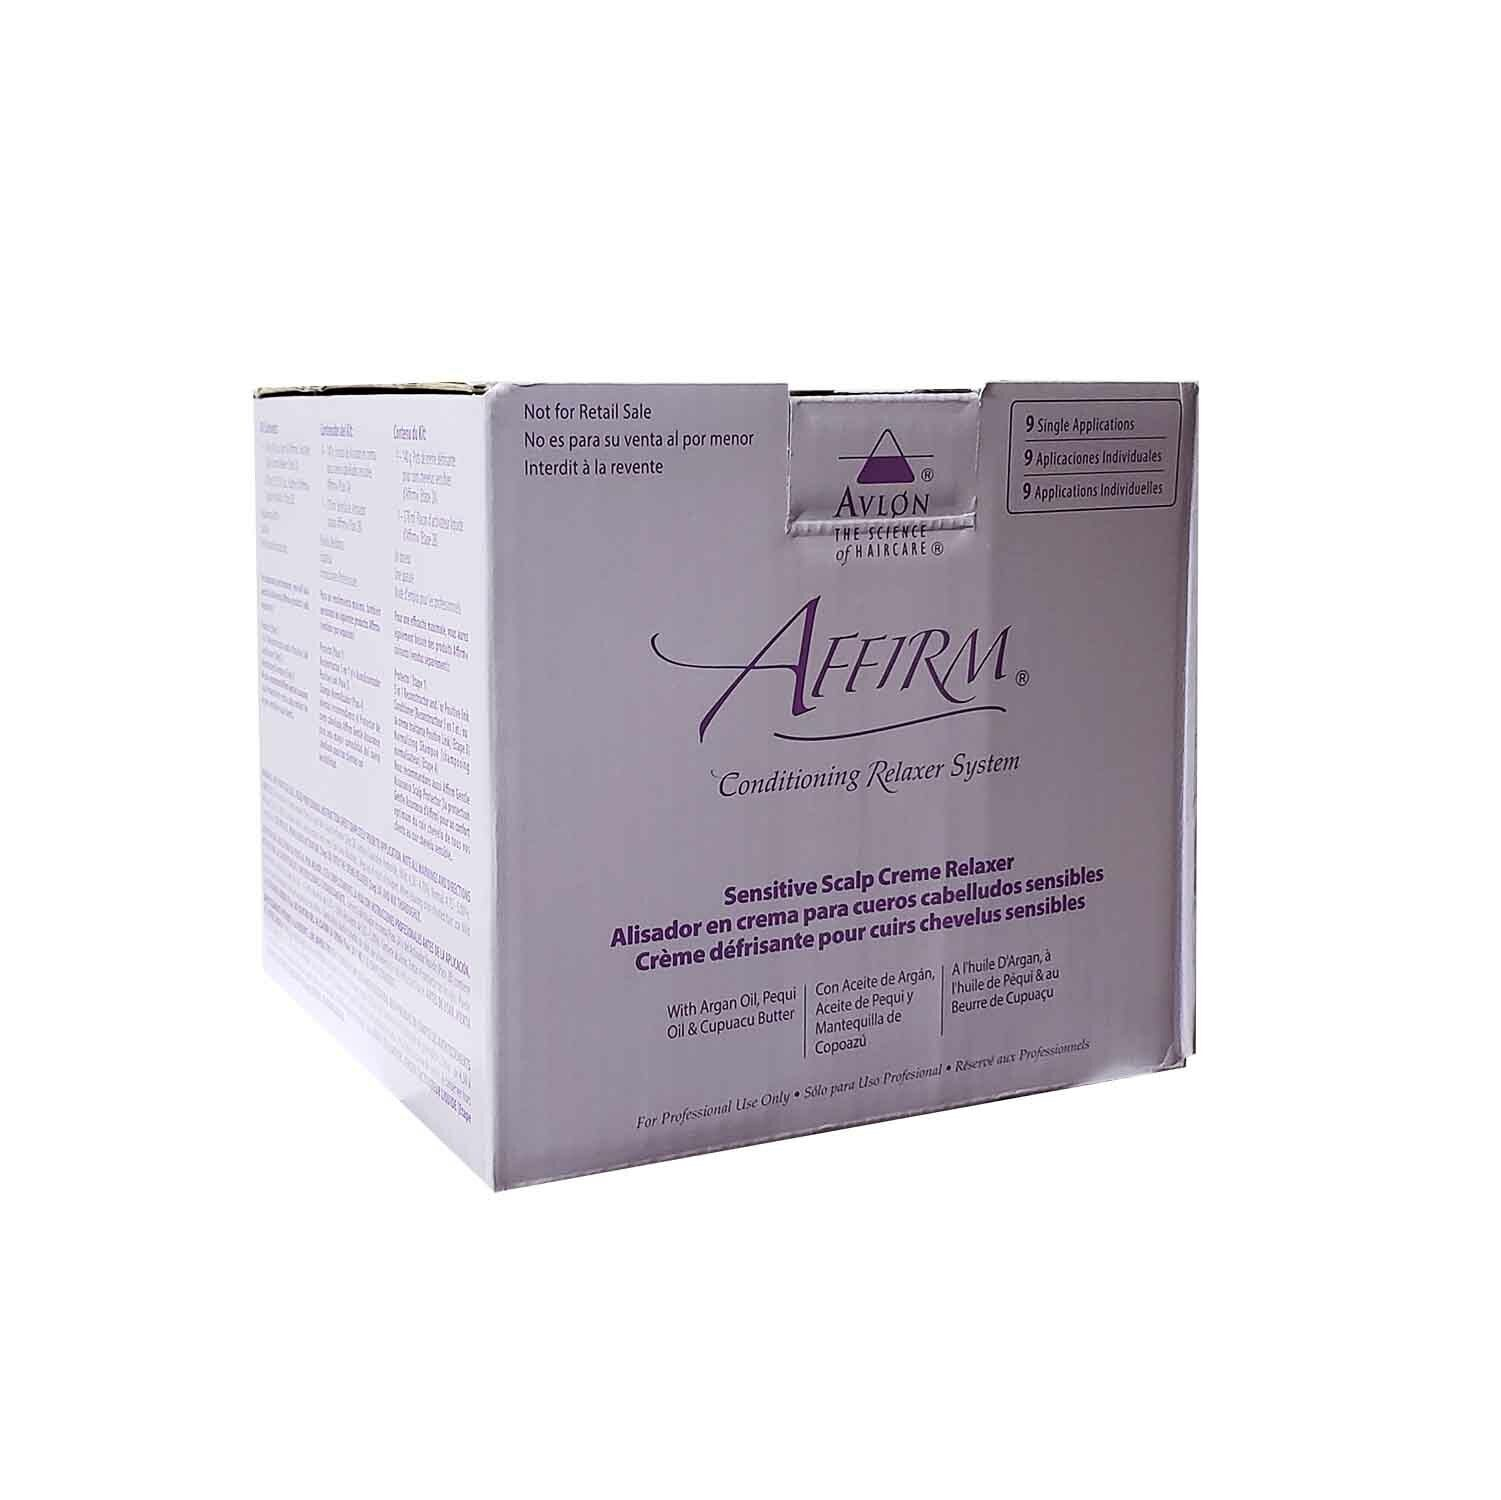 Avlon Affirm Sensitive Scalp Conditioning Relaxer (9 Single pack) Free shipping! Hair Care & Styling